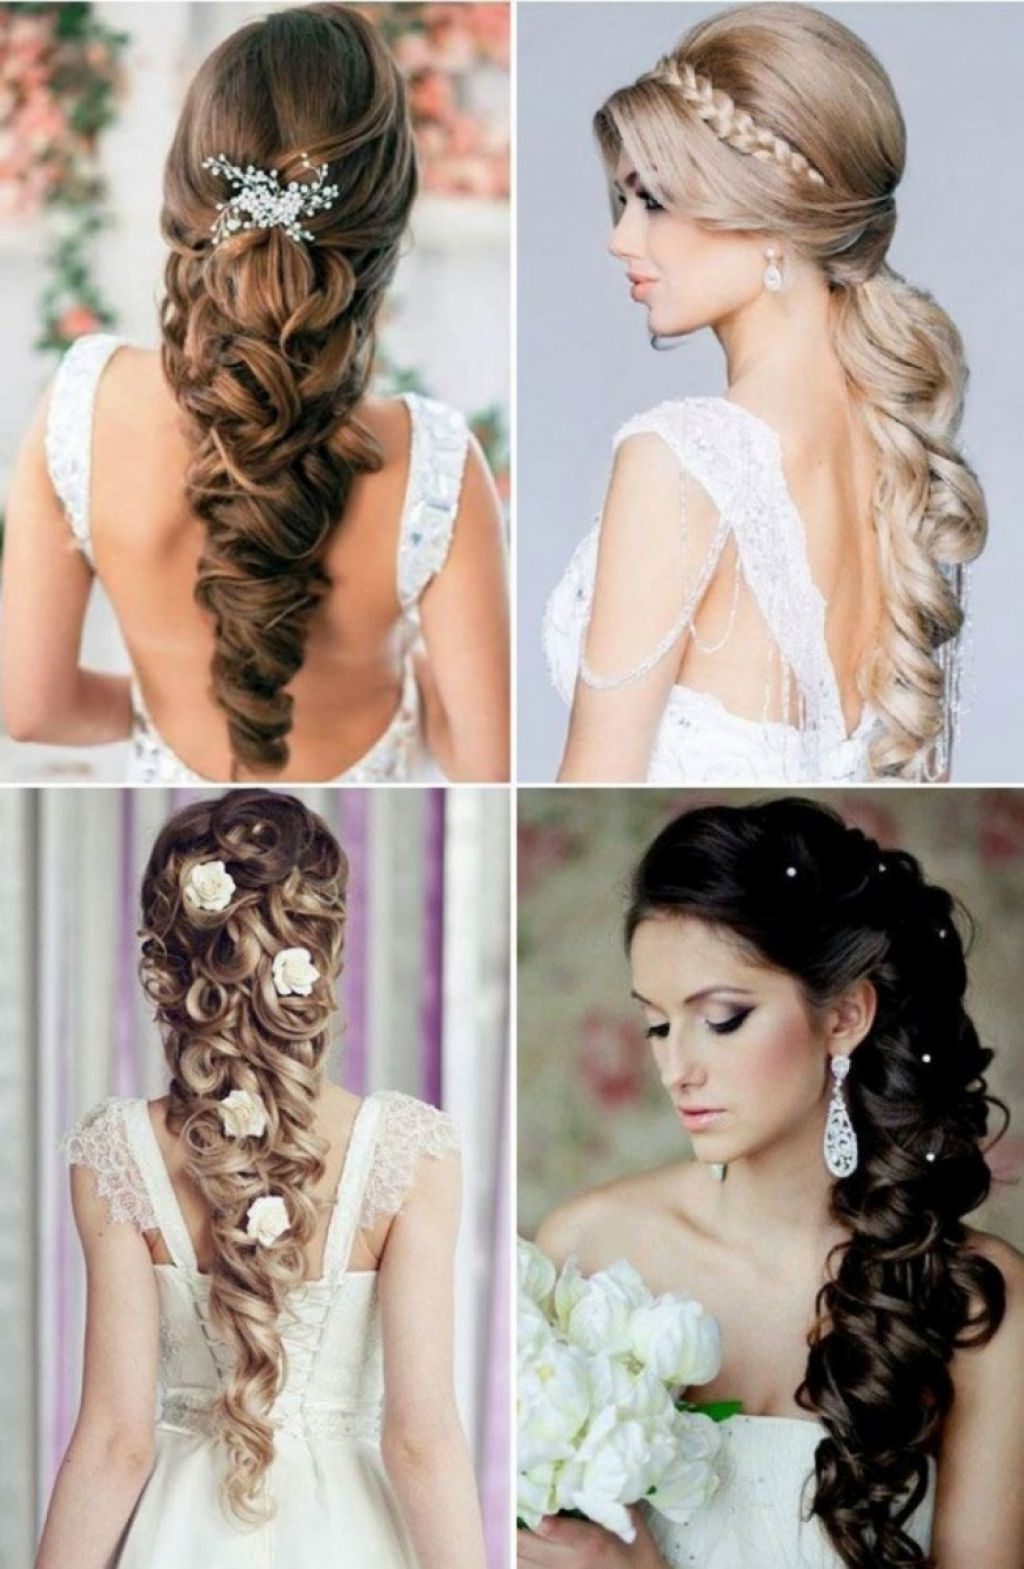 Current Hairstyles For Long Hair For A Wedding Party Intended For √ 24+ Fresh Hairstyles For Wedding Party: Hairstyles For Long Hair (View 1 of 15)